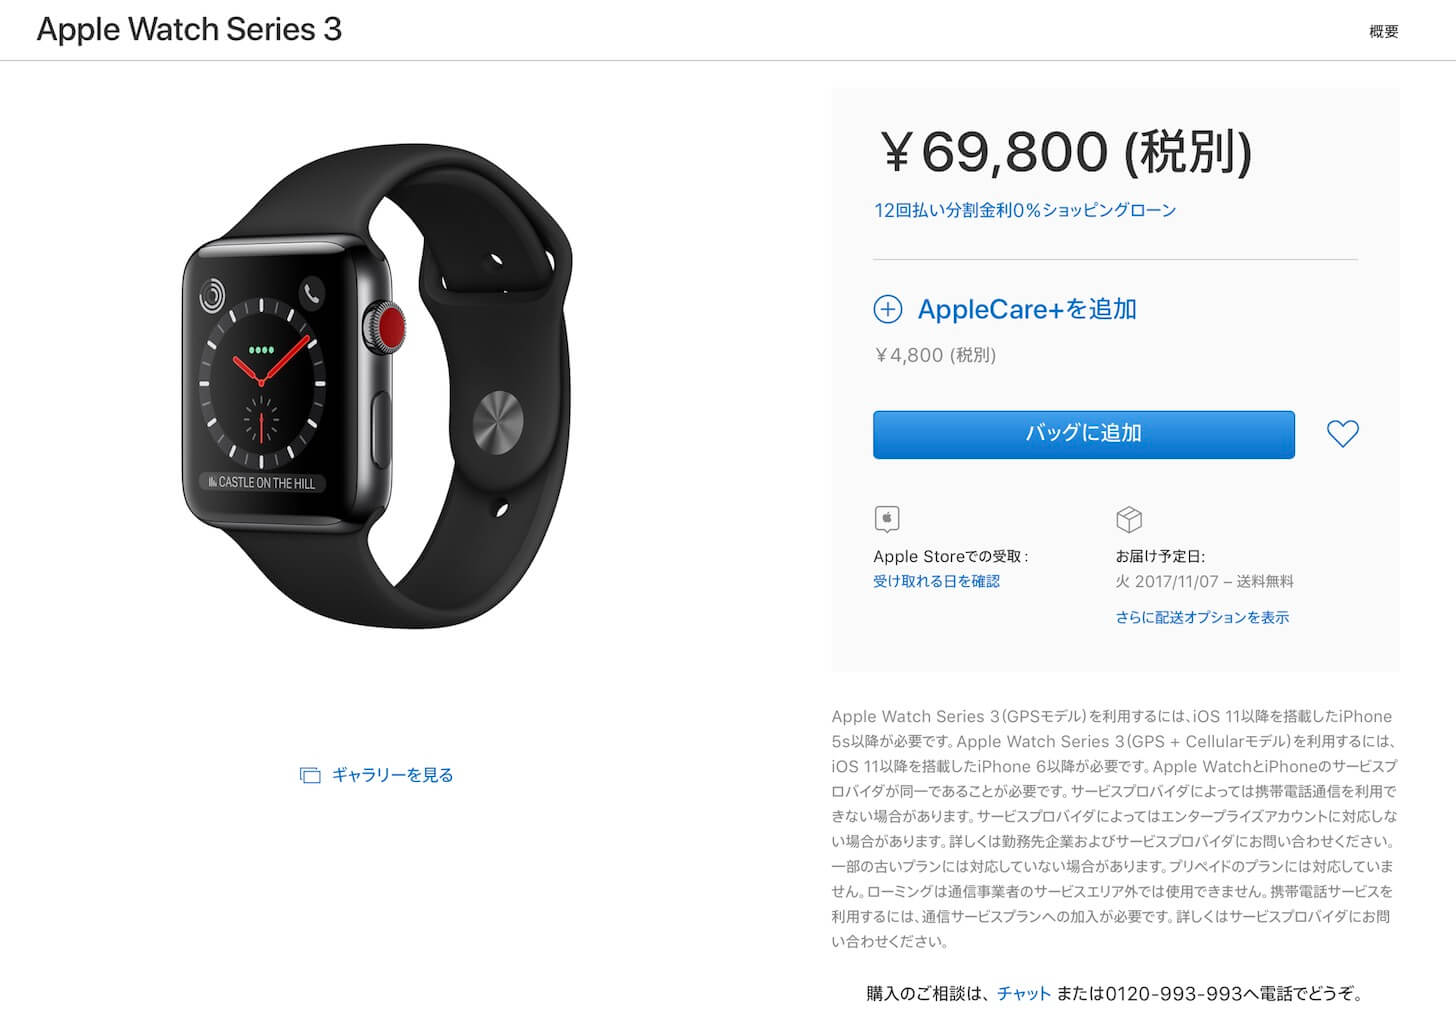 Have an interest in Apple Watch Series 3 6